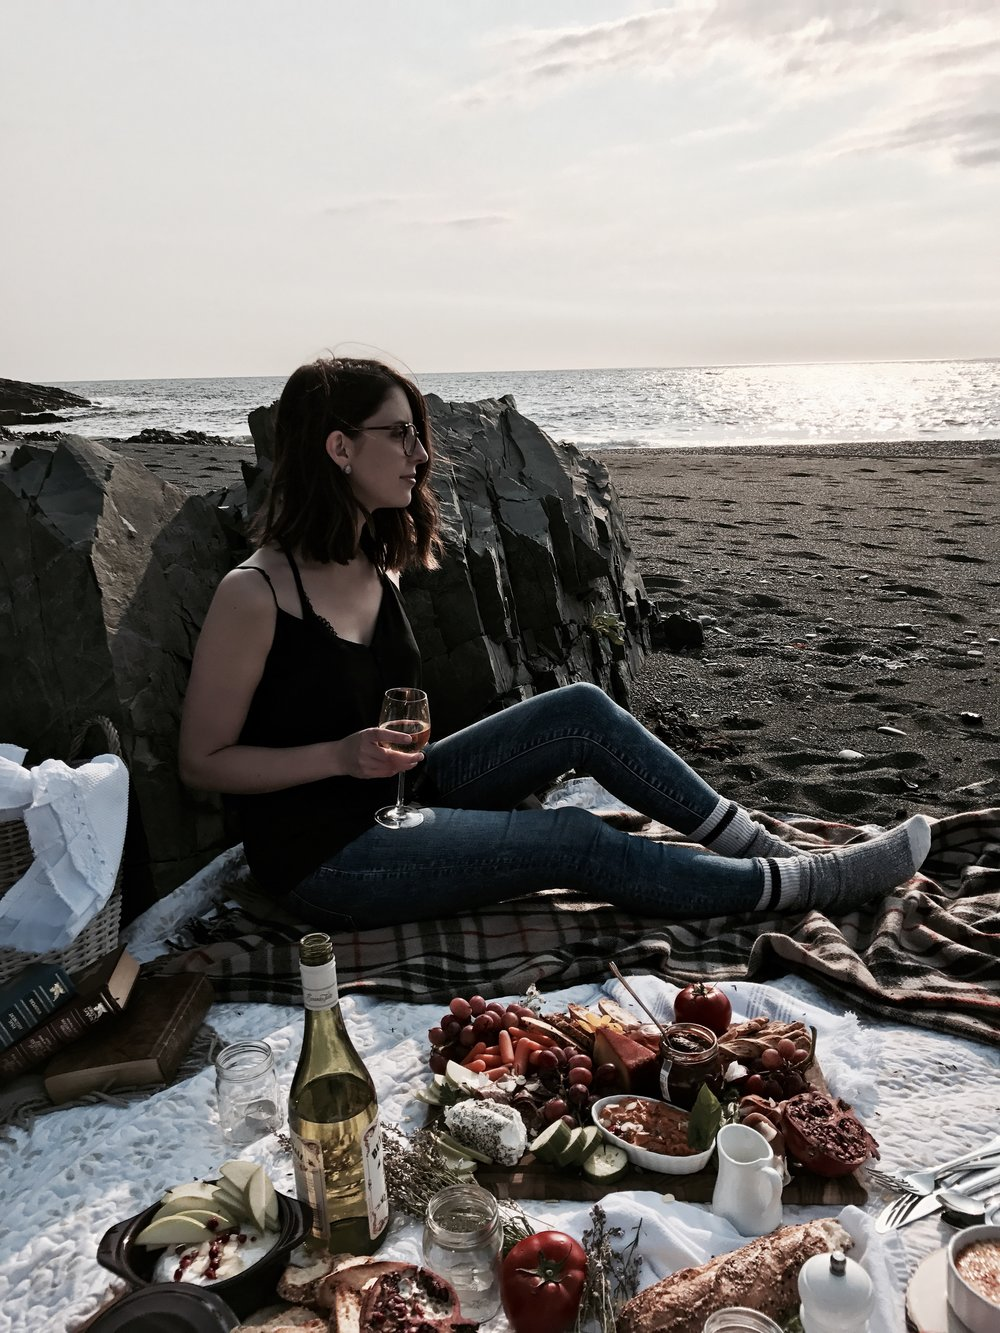 lauren dawe fashion food blog charcuterie picnic goals inspiration fall autumn